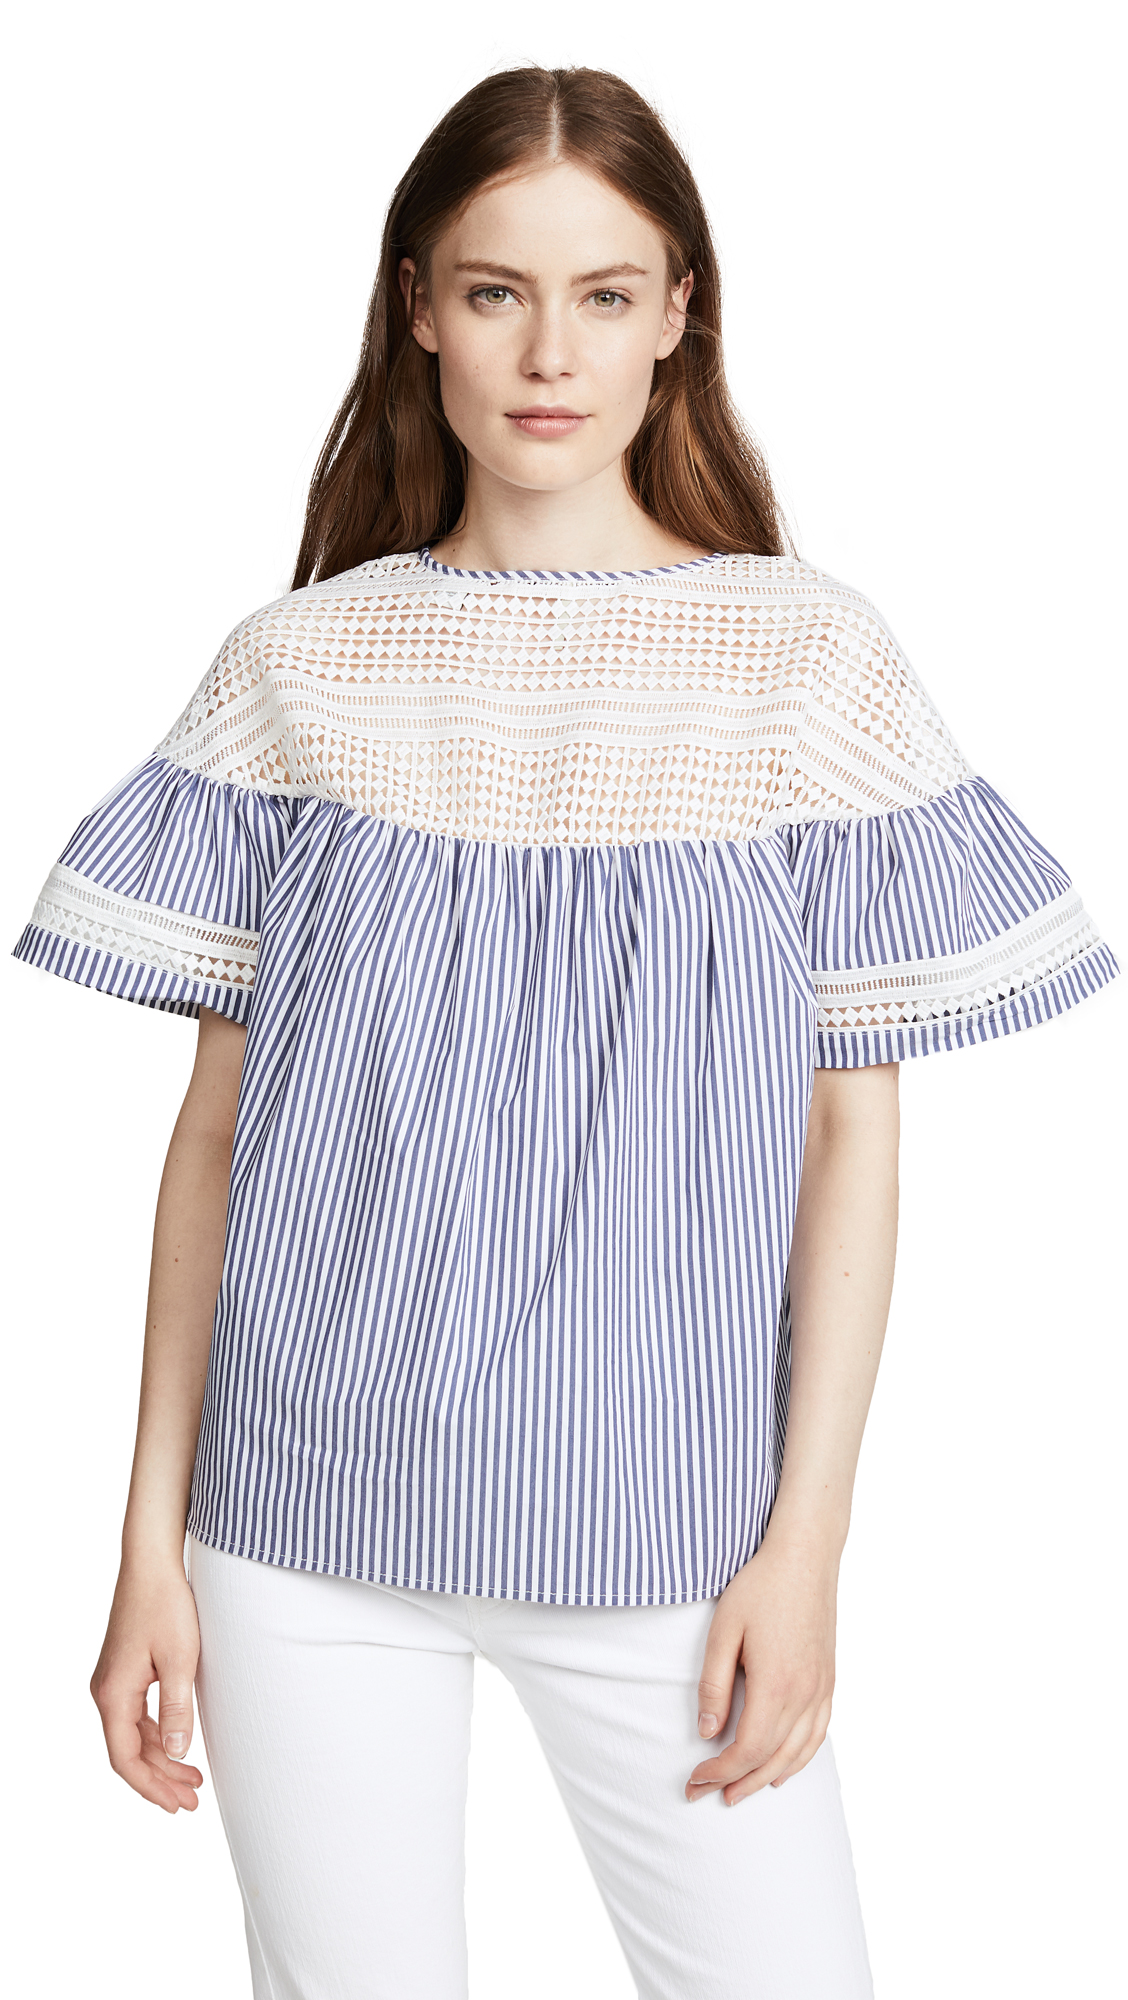 SCOTCH & SODA/MAISON SCOTCH SHORT SLEEVE STRIPED BLOUSE